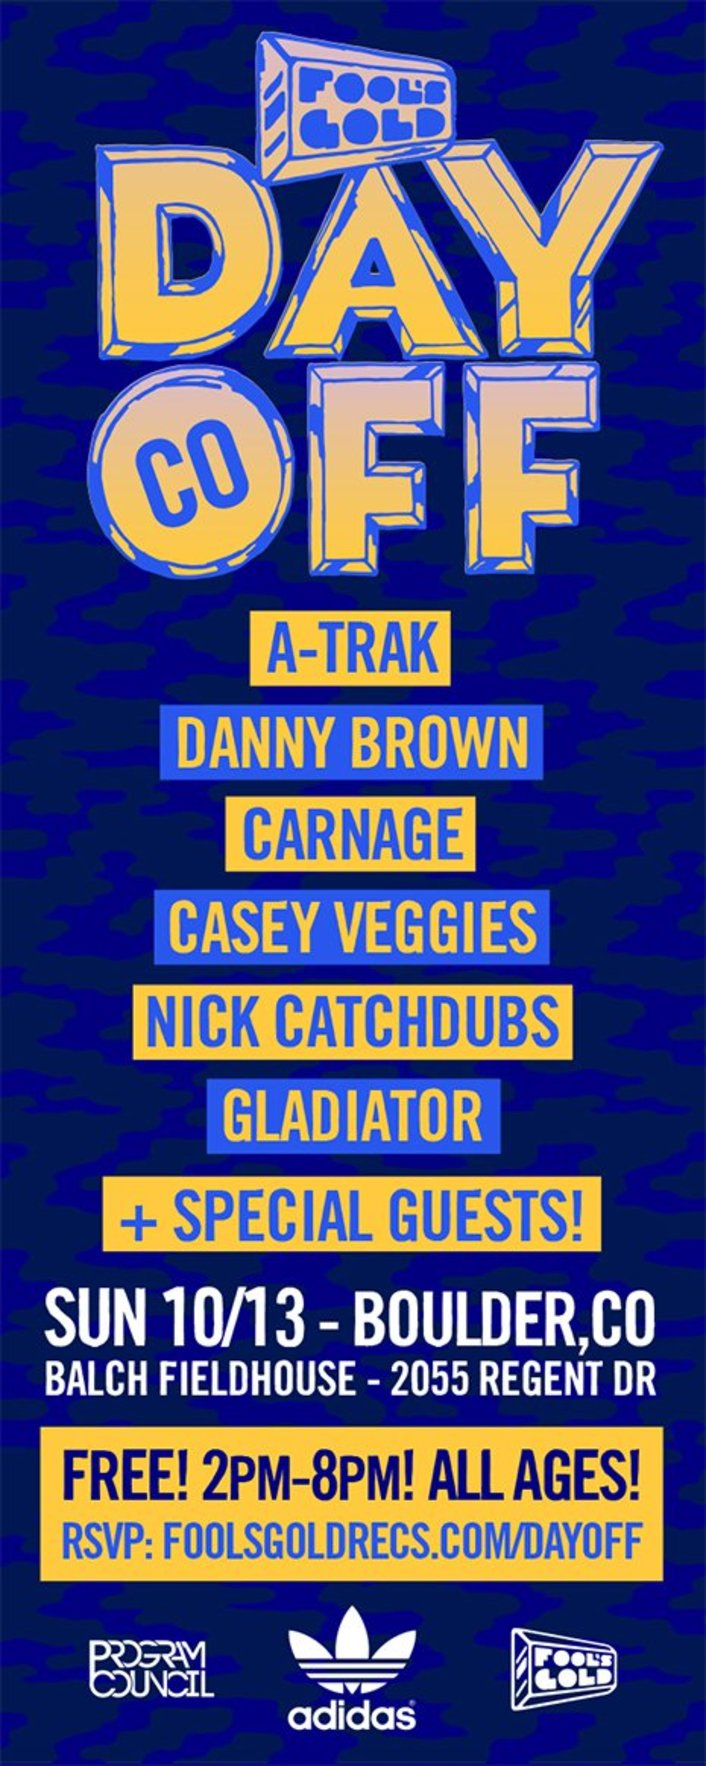 [GIVEAWAY] WIN VIP TICKETS TO THE FREE FOOLS GOLD DAY OFF CONCERTS IN BOULDER, LOS ANGELES or MIAMI with A-TRAK, DANNY BROWN, CARNAGE and MORE!  - Featured Image